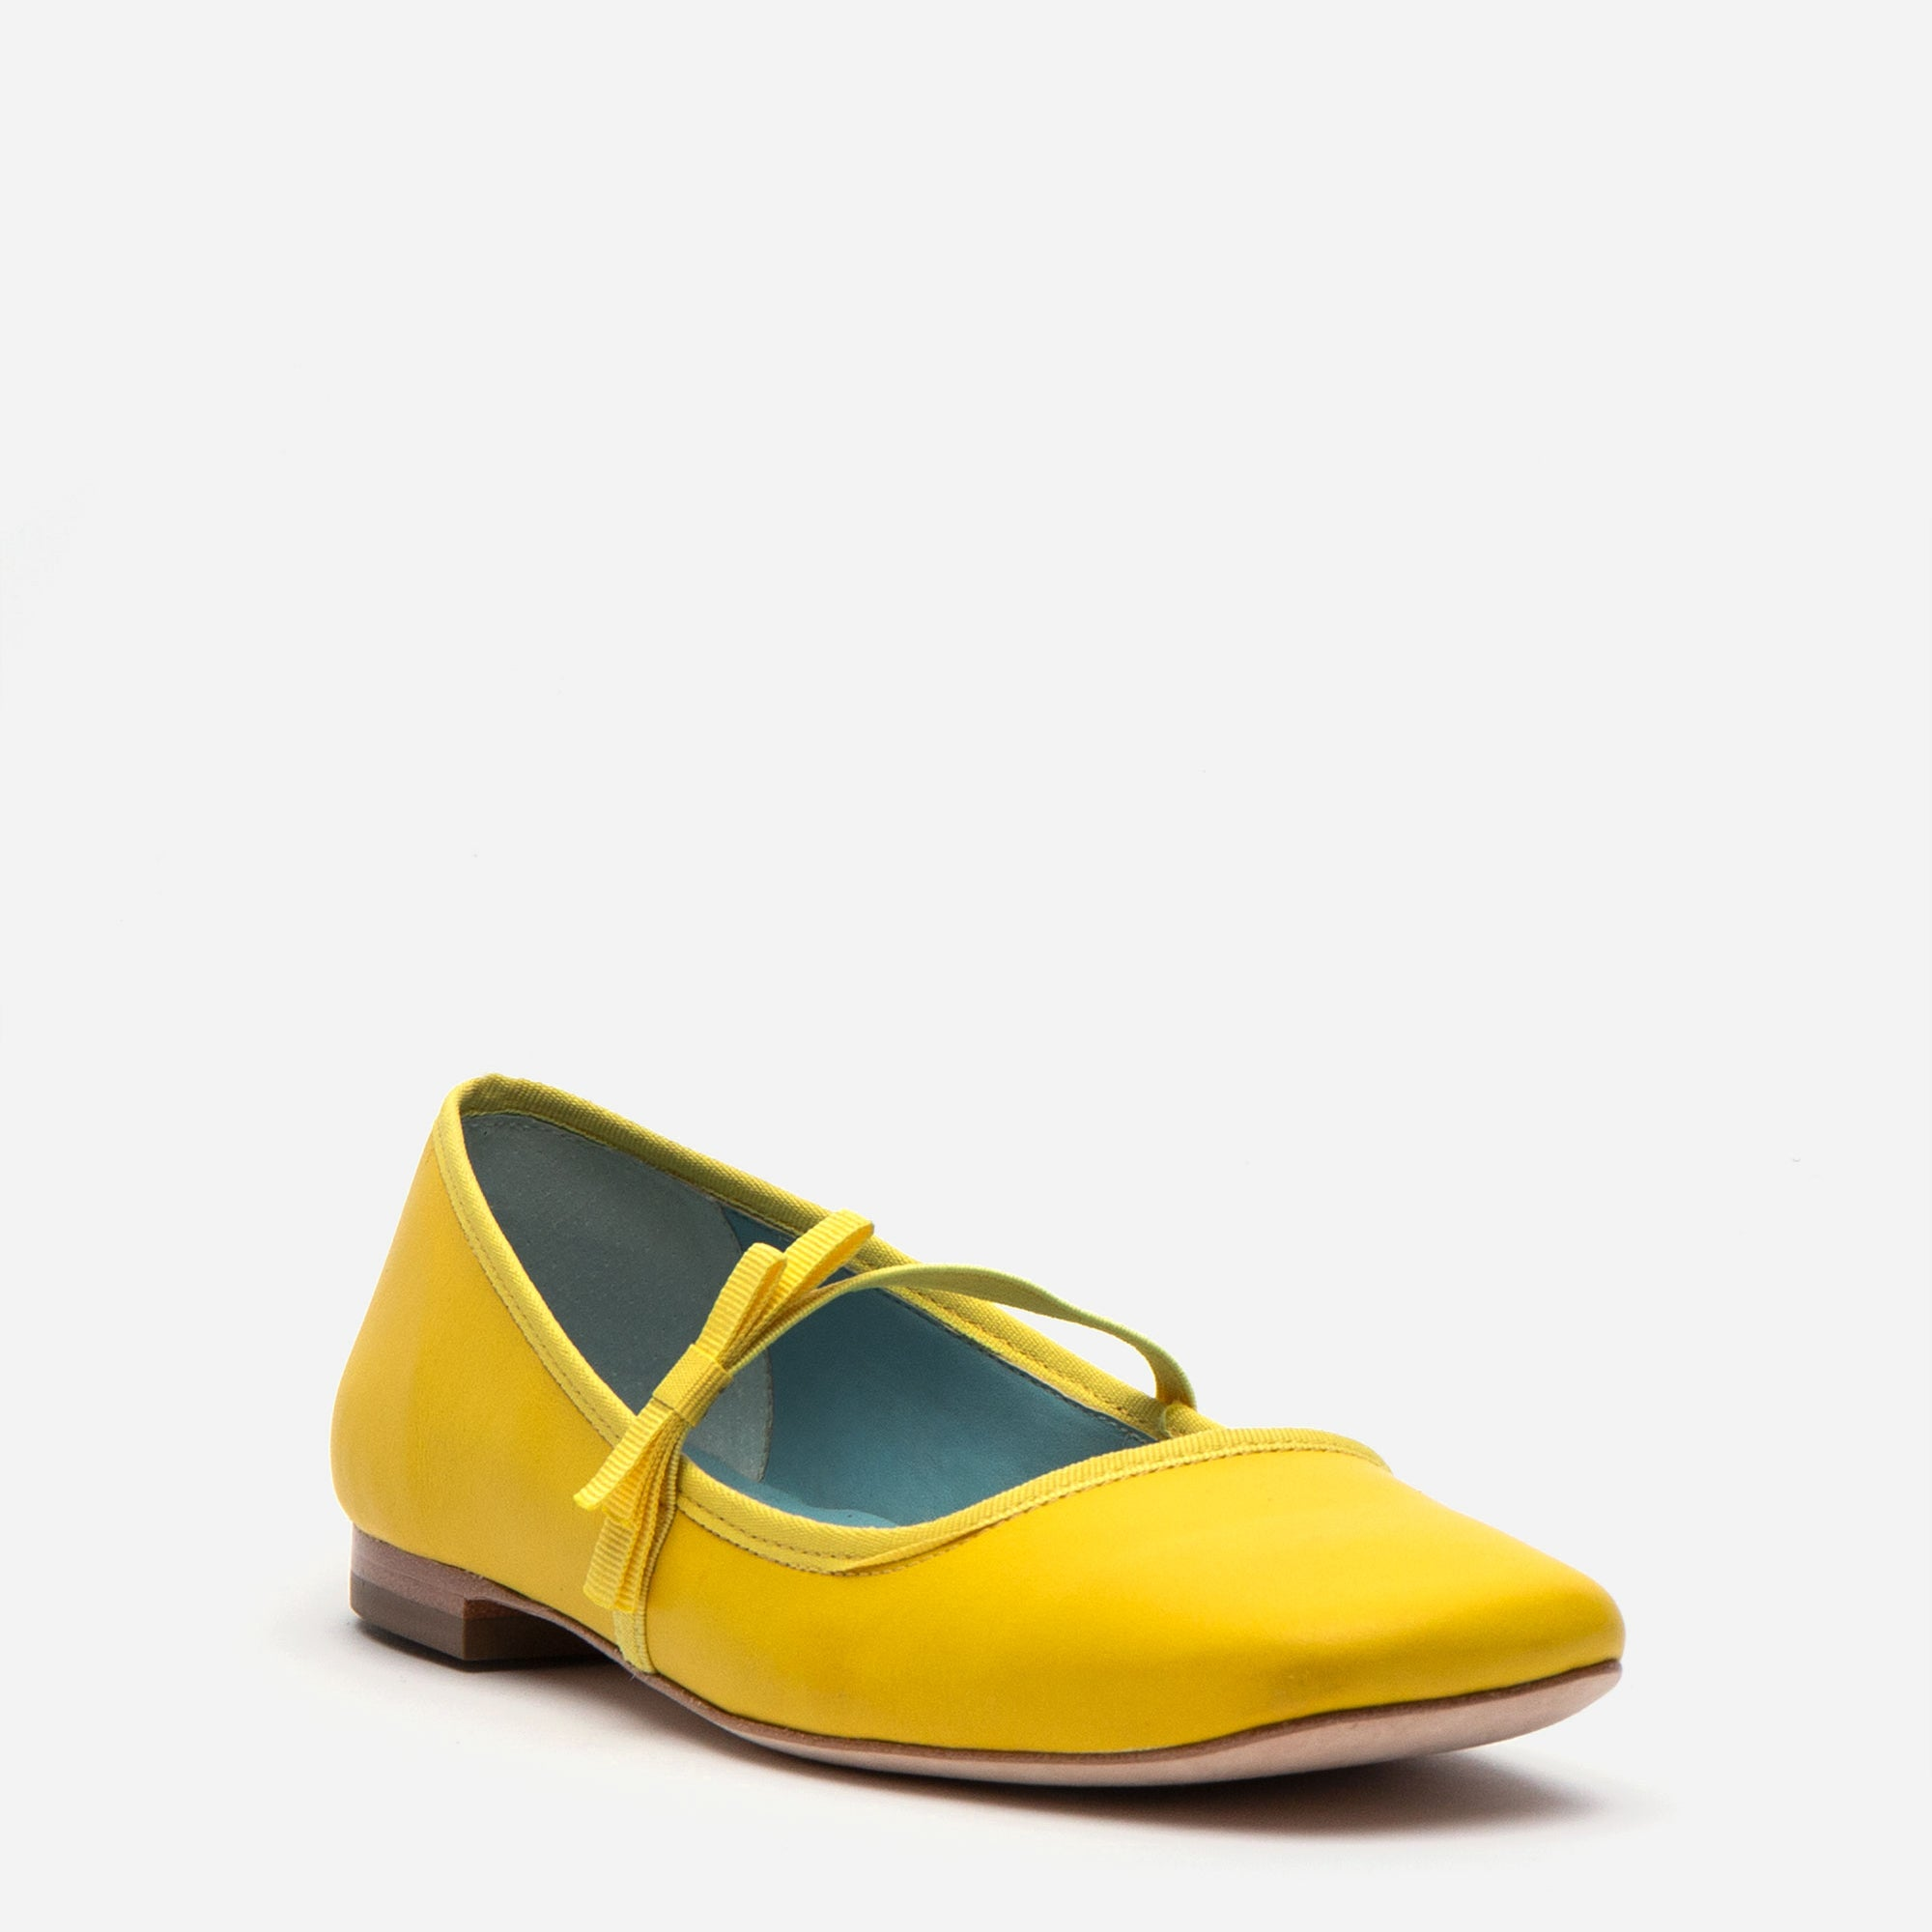 f80d1fd1f Jude Mary Jane Leather Flats Canary Jude Mary Jane Leather Flats Canary